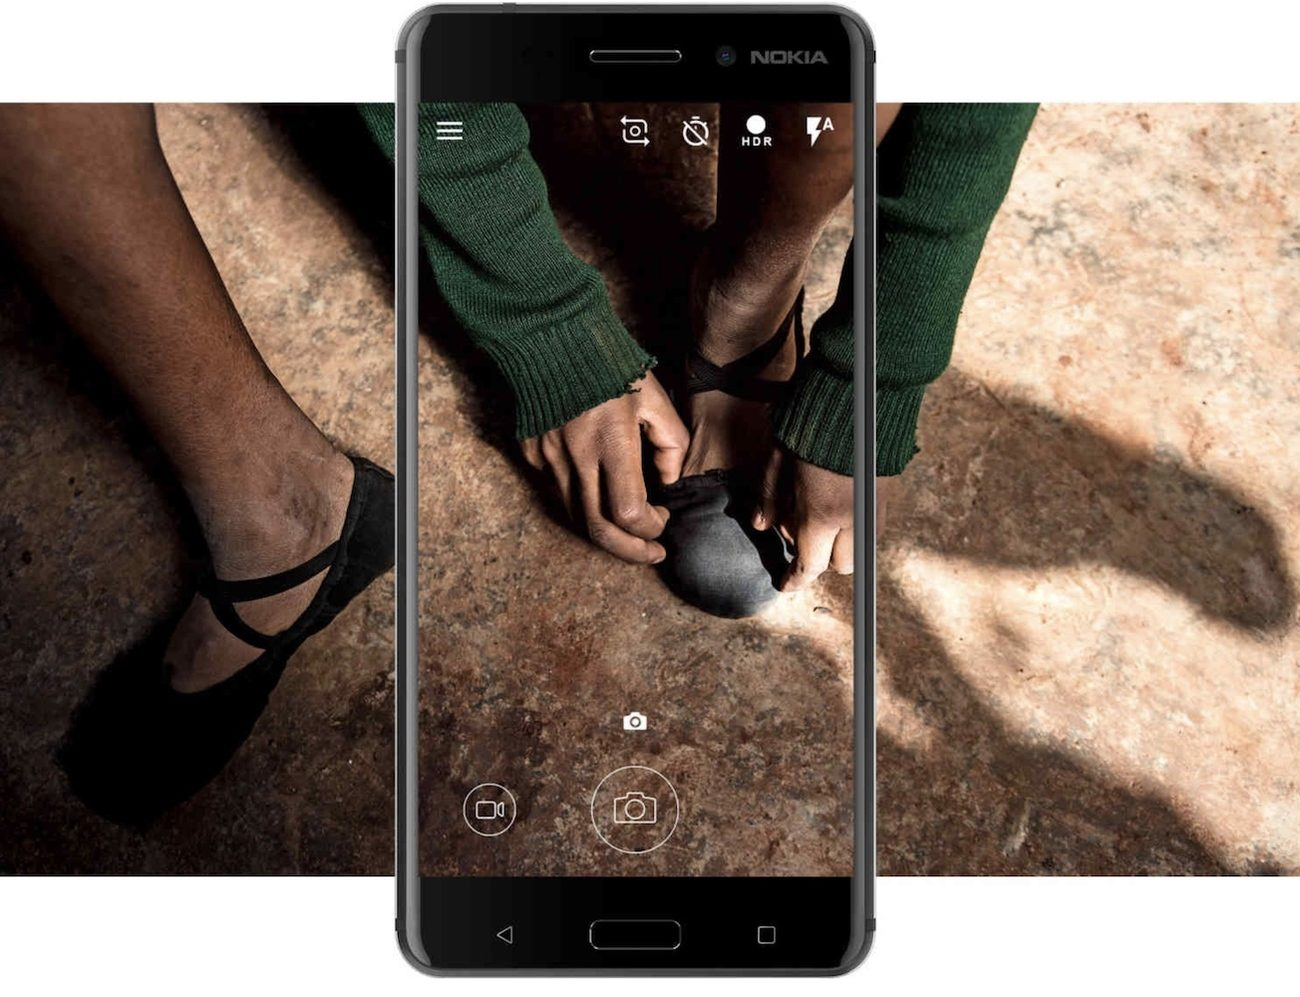 Nokia 6 Immersive Android Smartphone